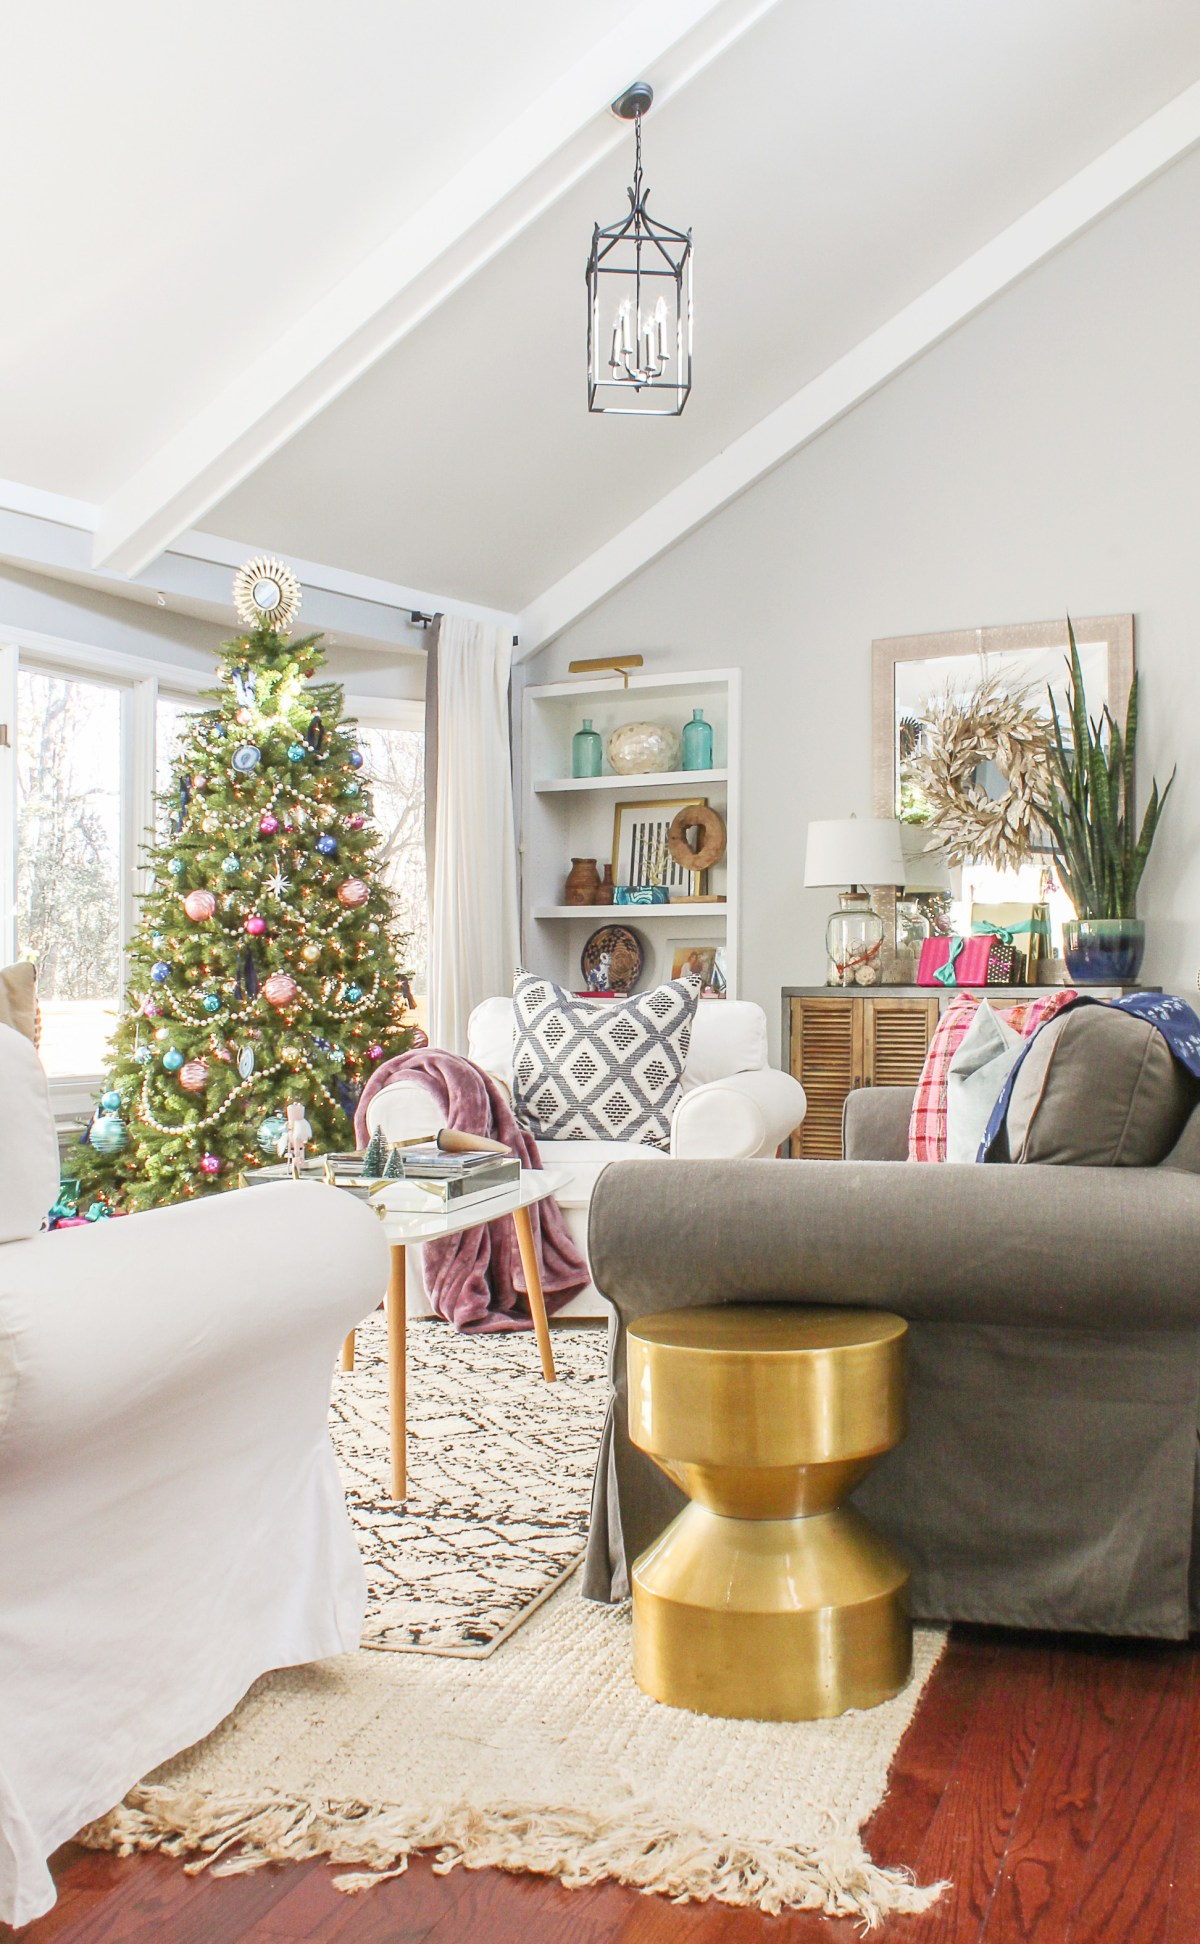 boho chic christmas decor ideas - Boho Christmas Decor